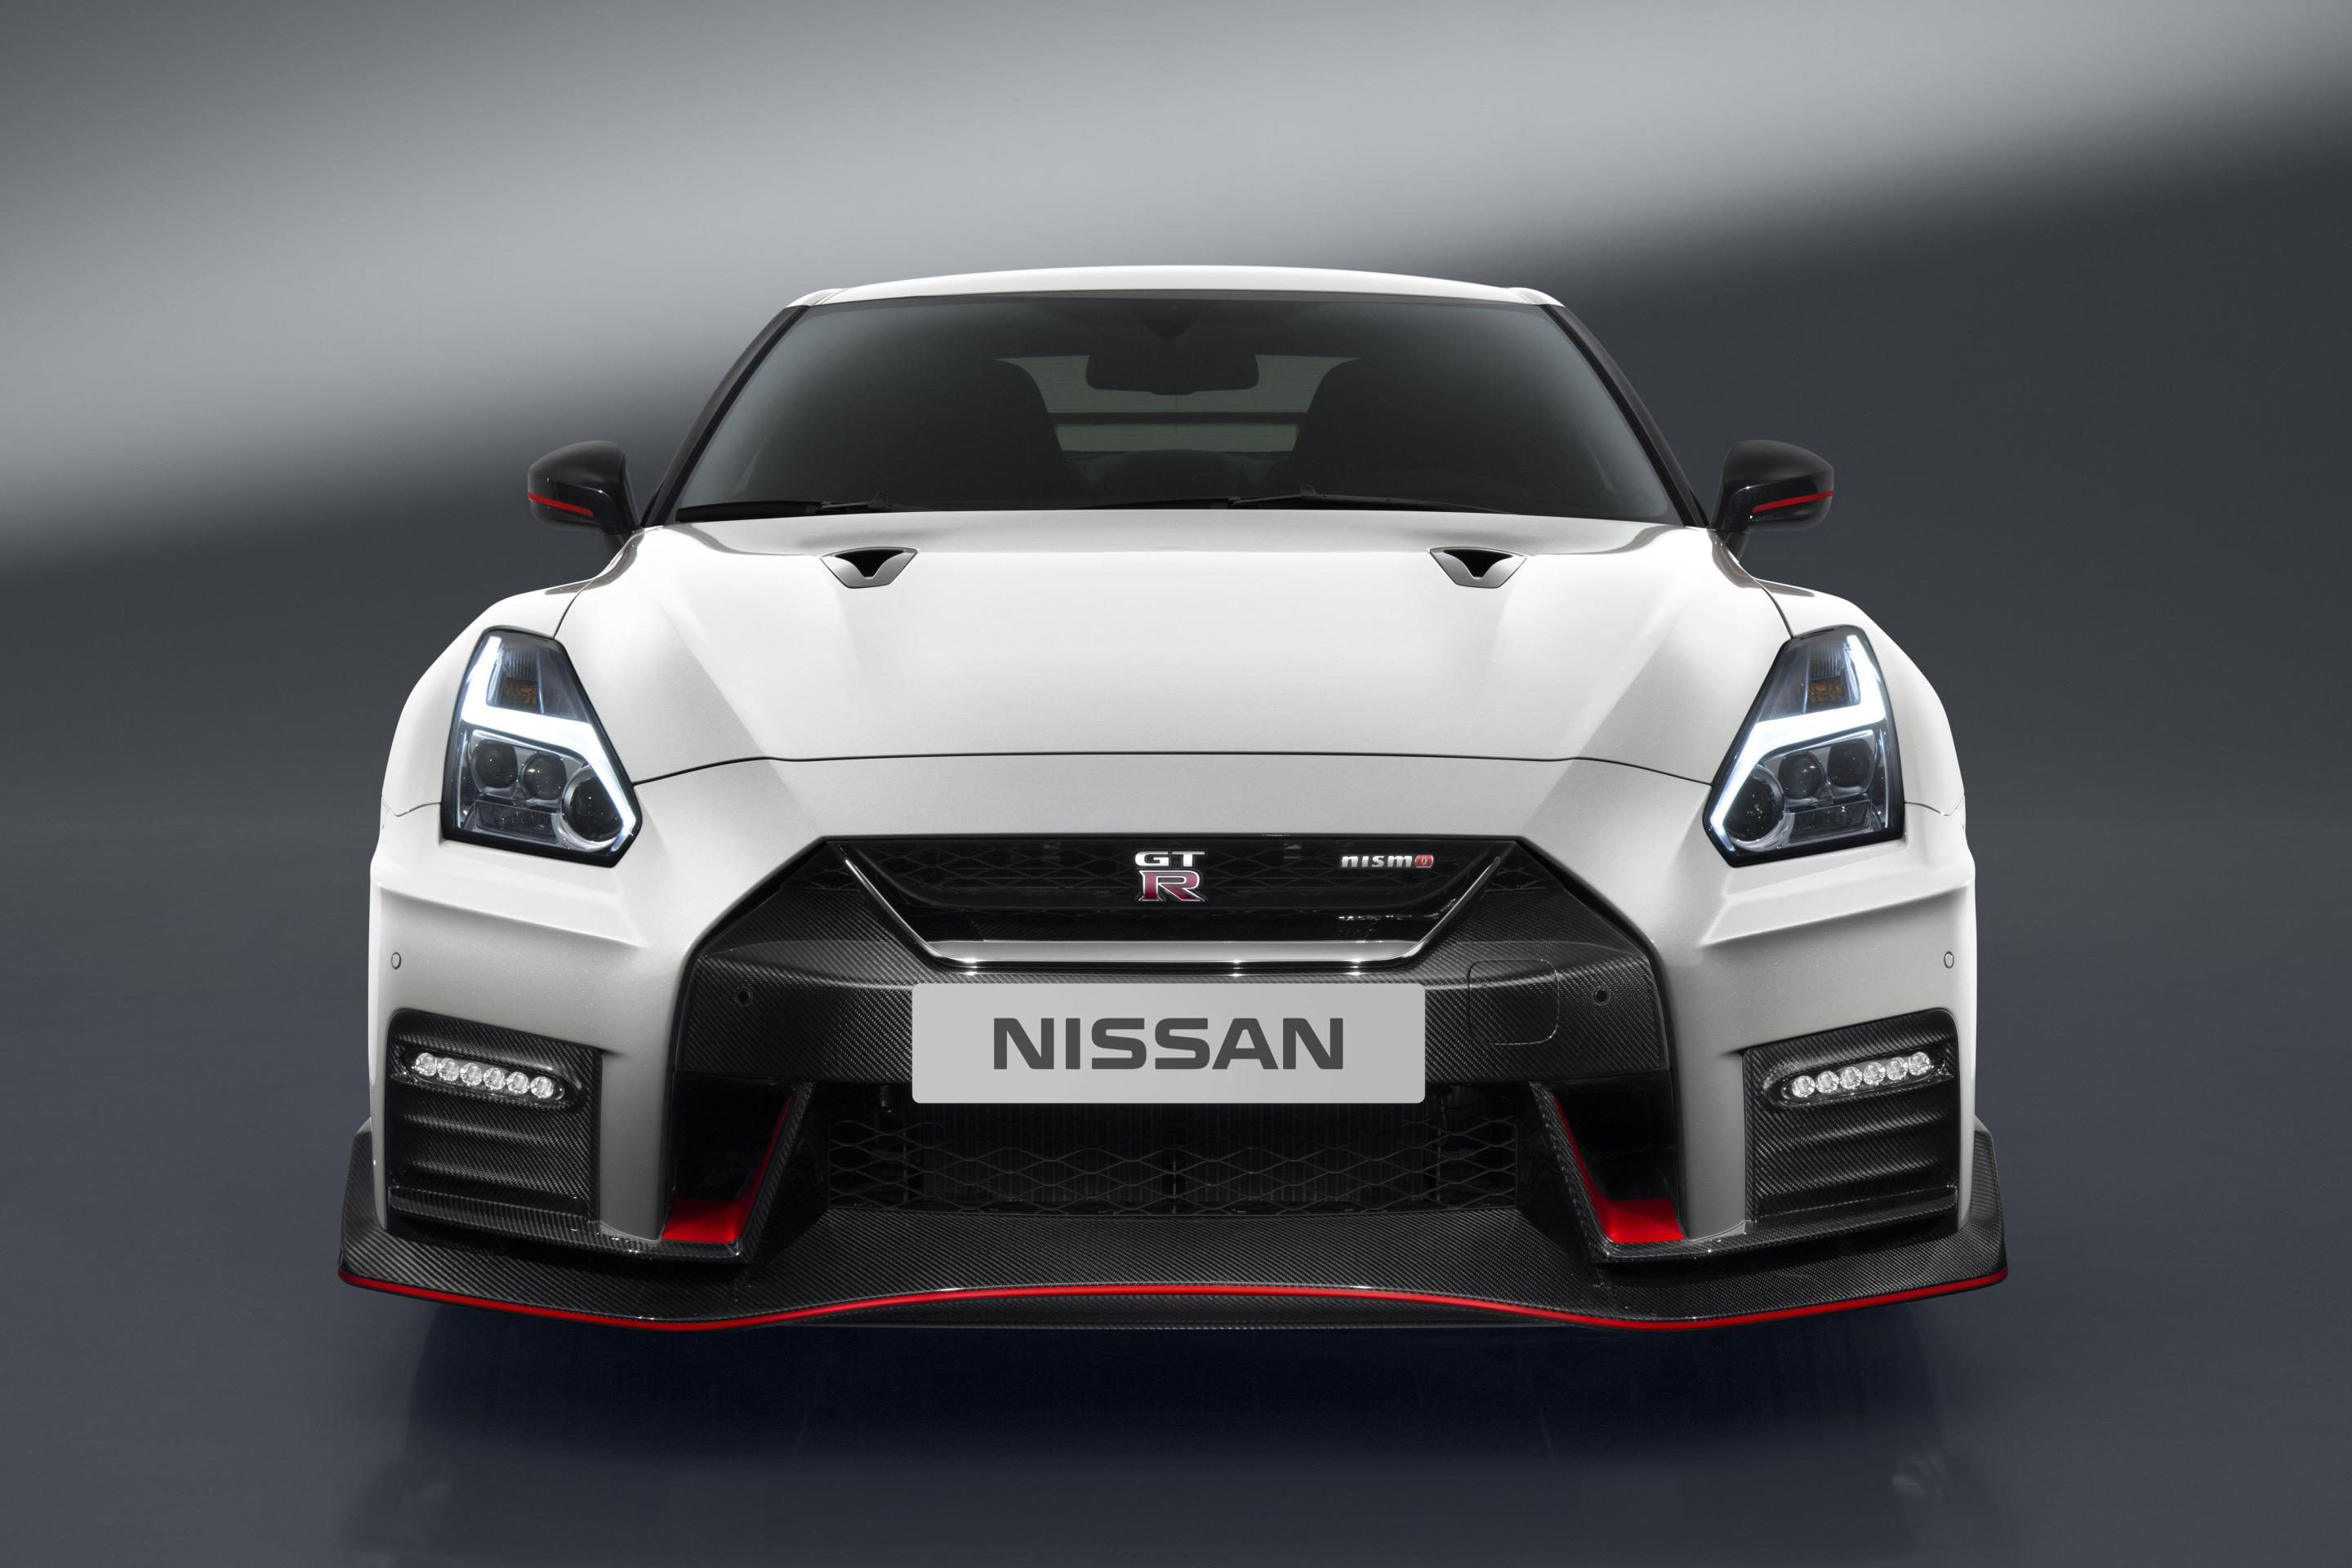 official 2017 nissan gt r nismo gtspirit. Black Bedroom Furniture Sets. Home Design Ideas